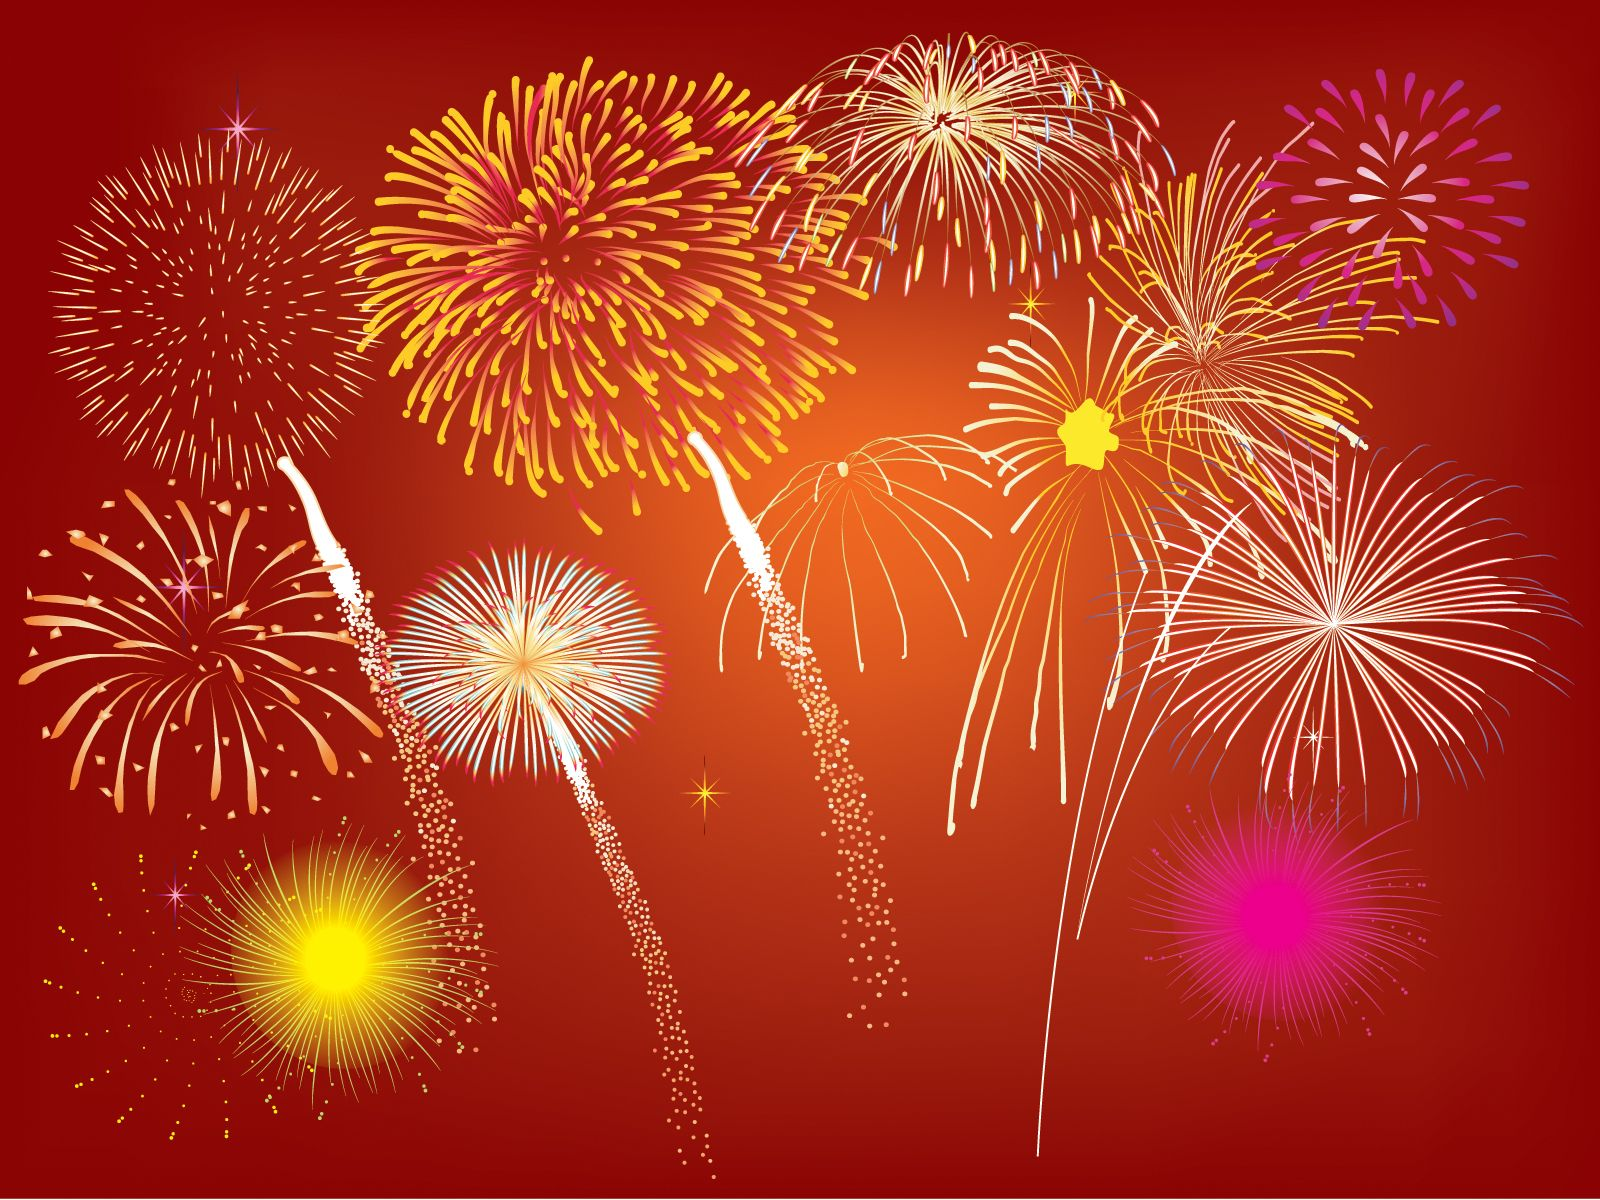 Next stop pinterest technology pinterest template background fireworks powerpoint template is a great background design with fireworks over the red background color that was designed for your powerpoint presentations toneelgroepblik Choice Image